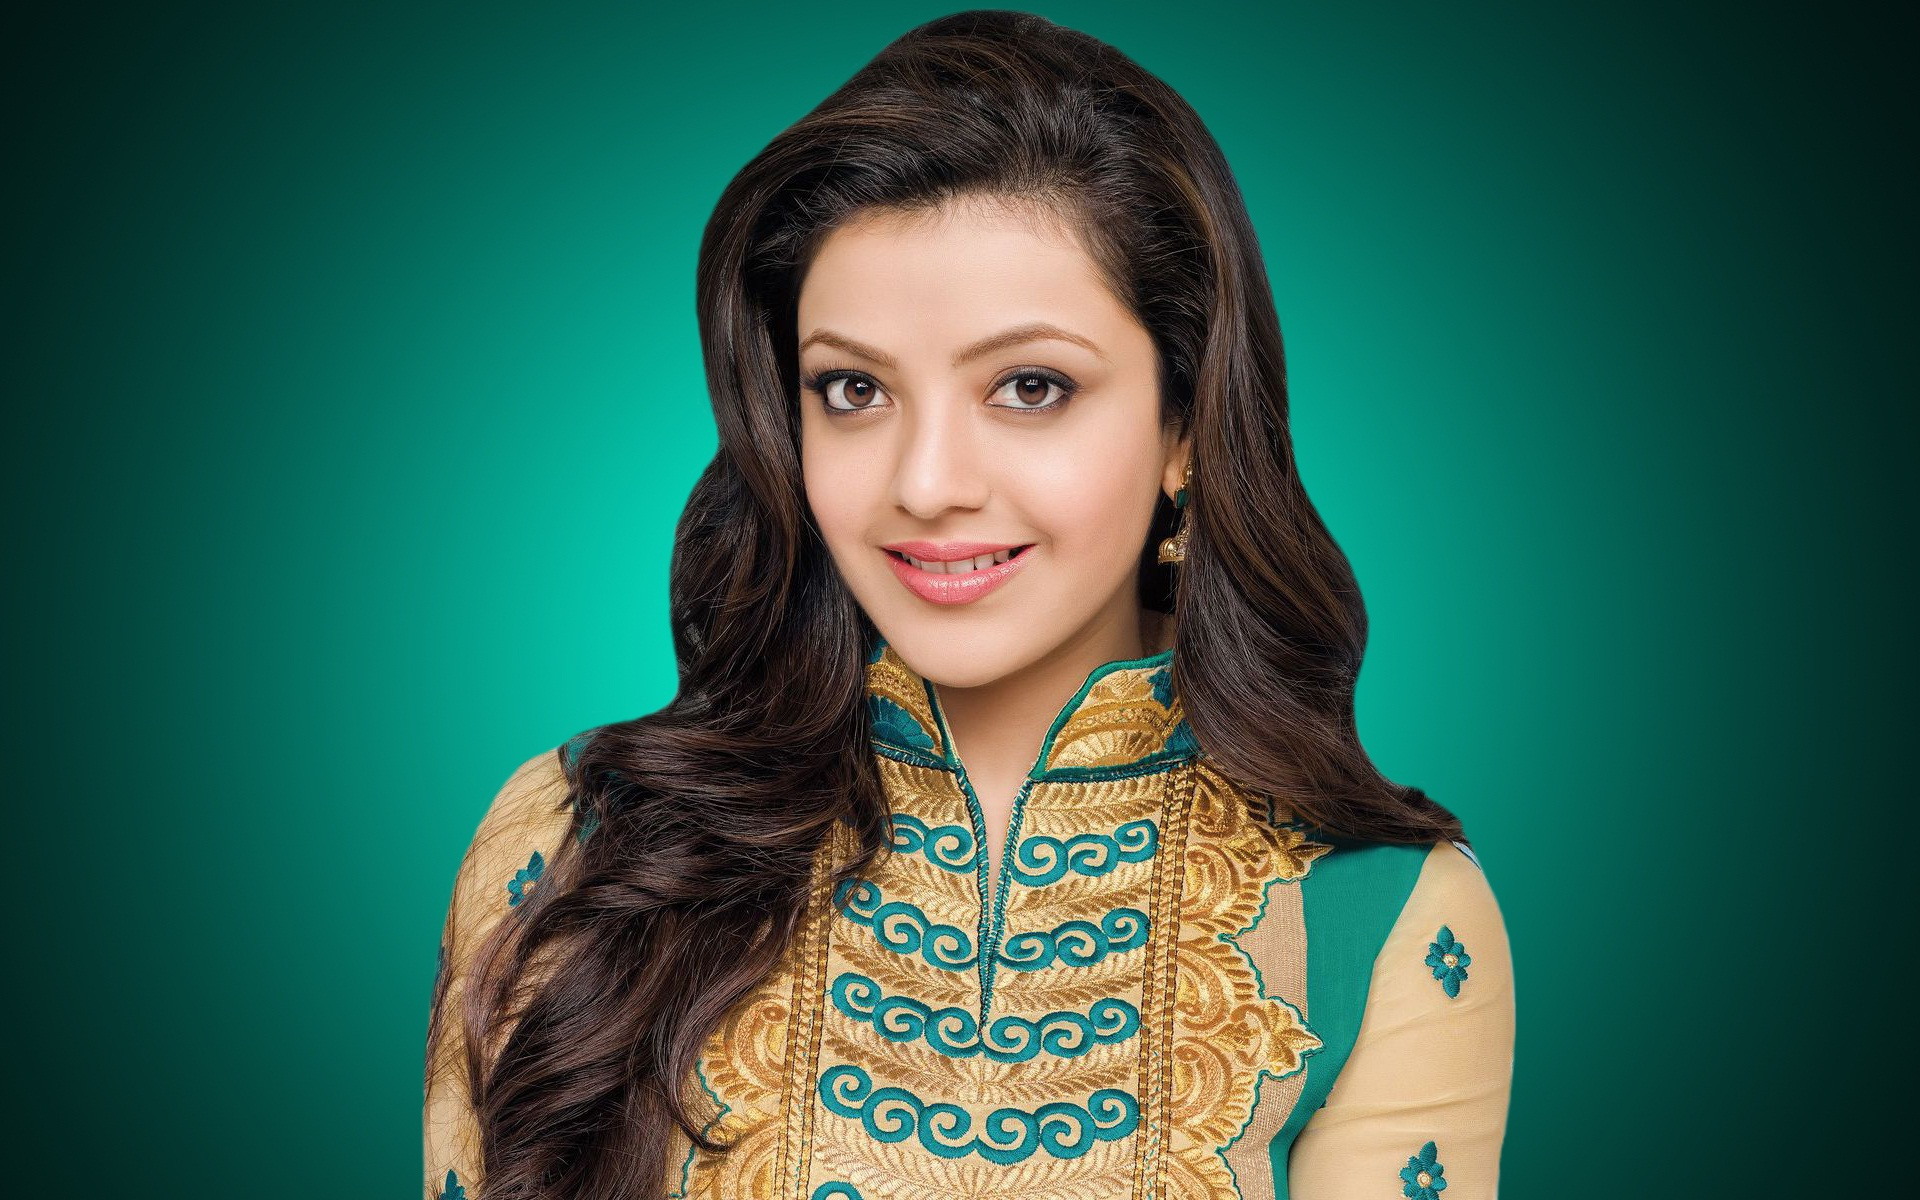 Kajal Agarwal Full Hd New Wallpaper Hd Wallpapers